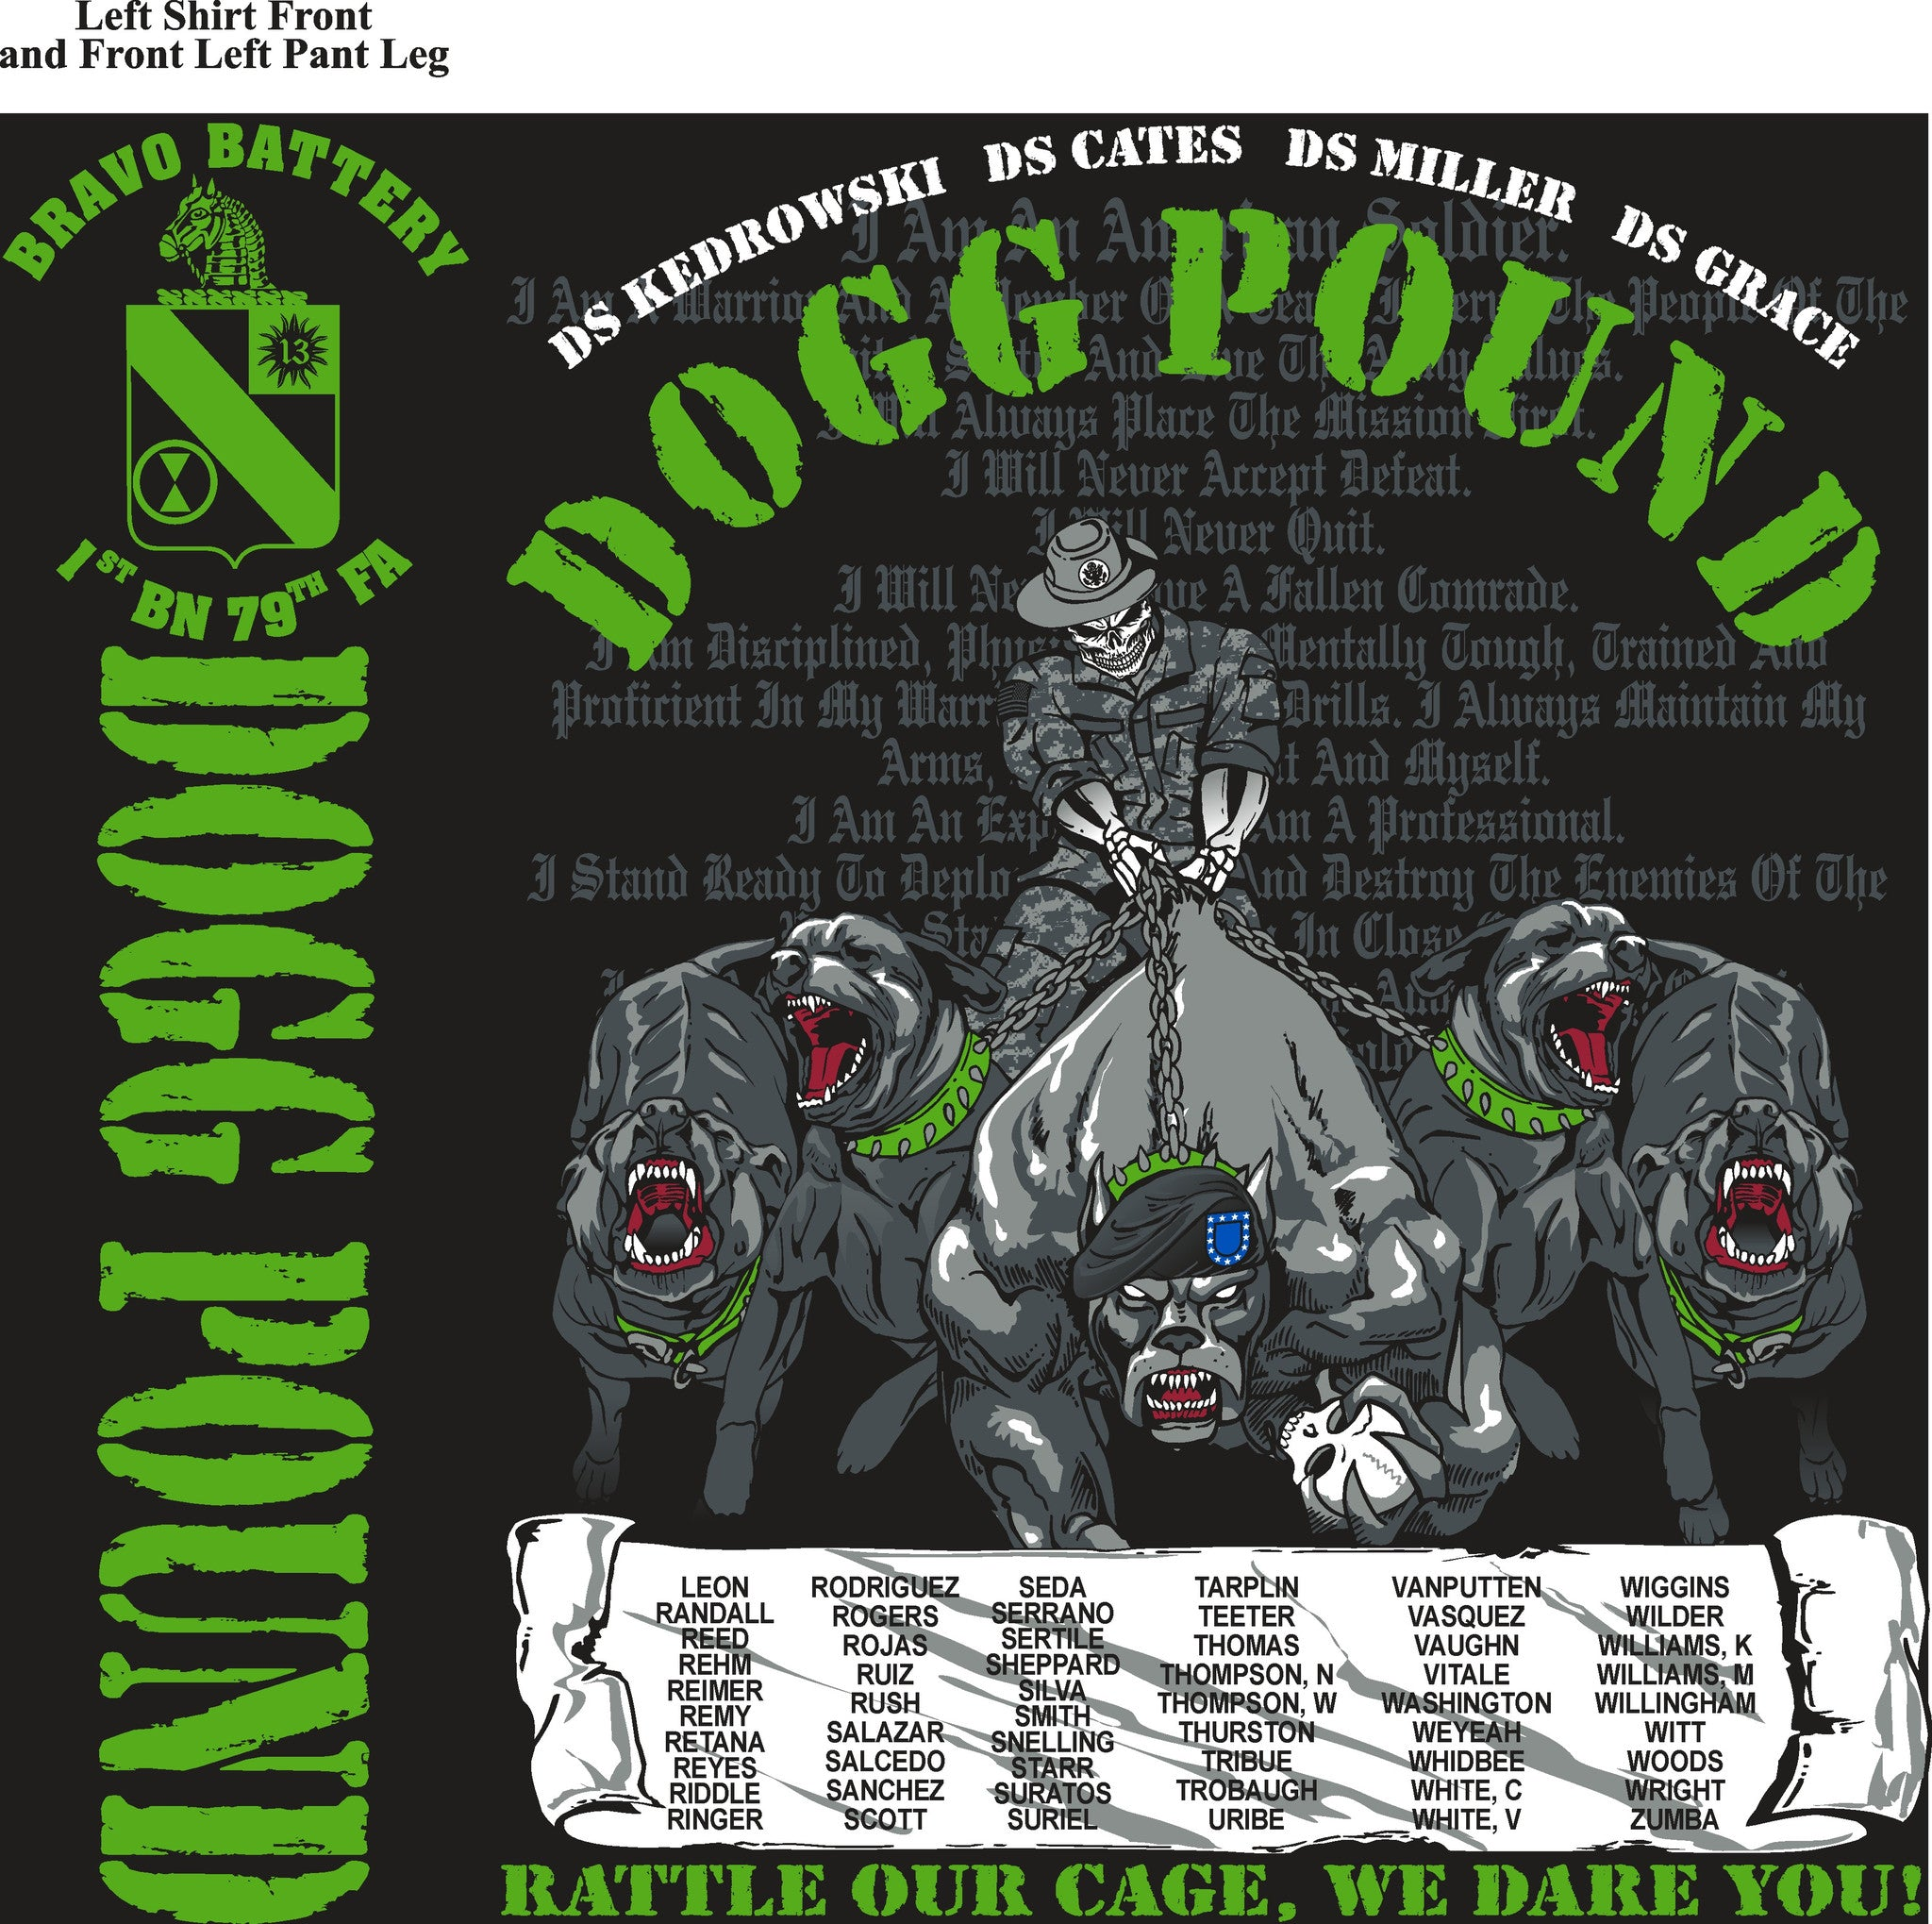 Platoon Shirts BRAVO 1st 79th DOGG POUND MAY 2015